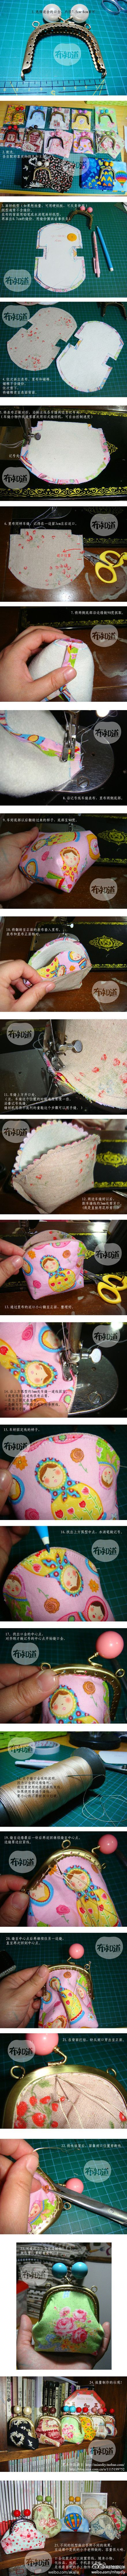 Make a petite coin purse.: